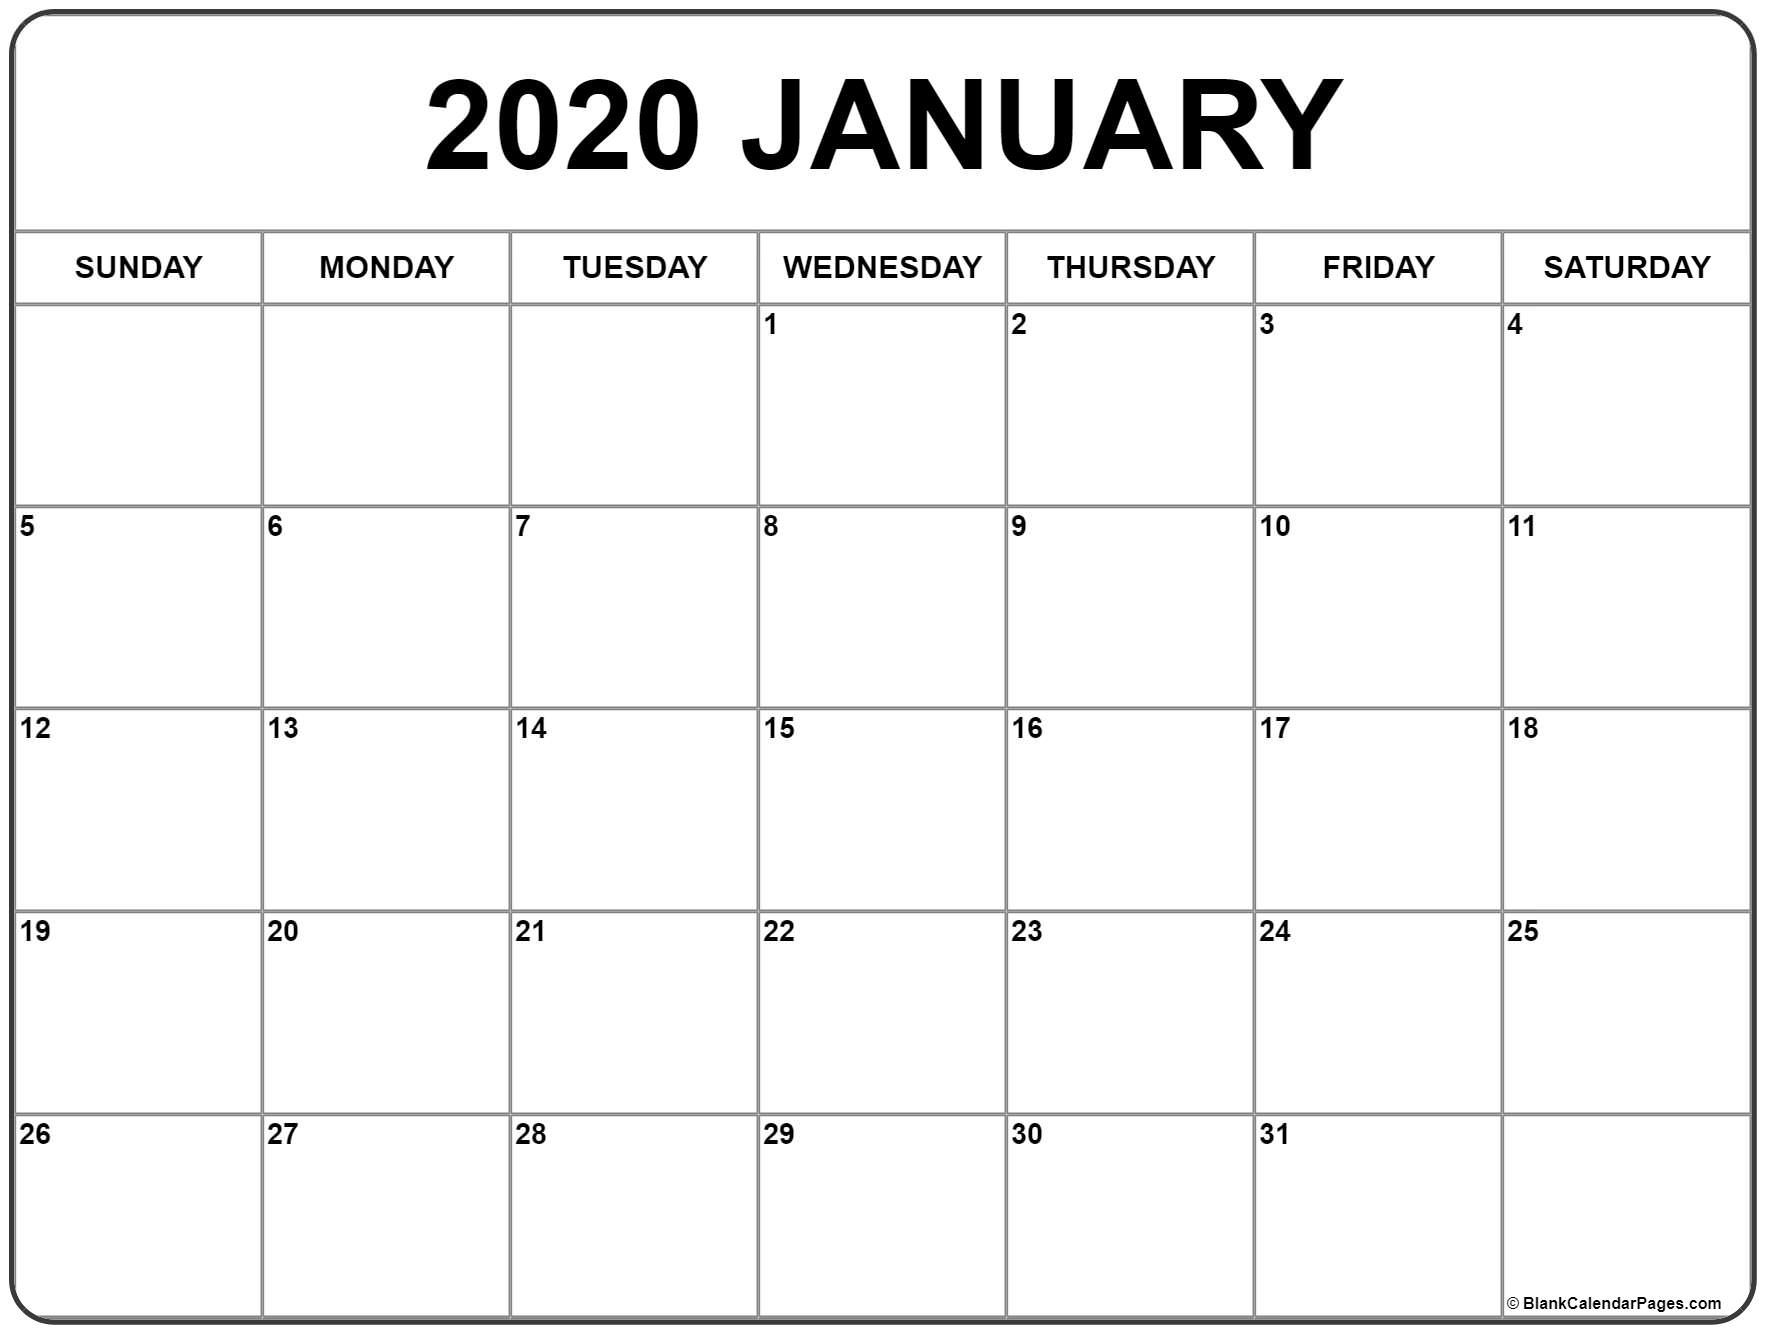 January 2020 Calendar | Free Printable Monthly Calendars for Printable Monthly Calendar 2020 Free